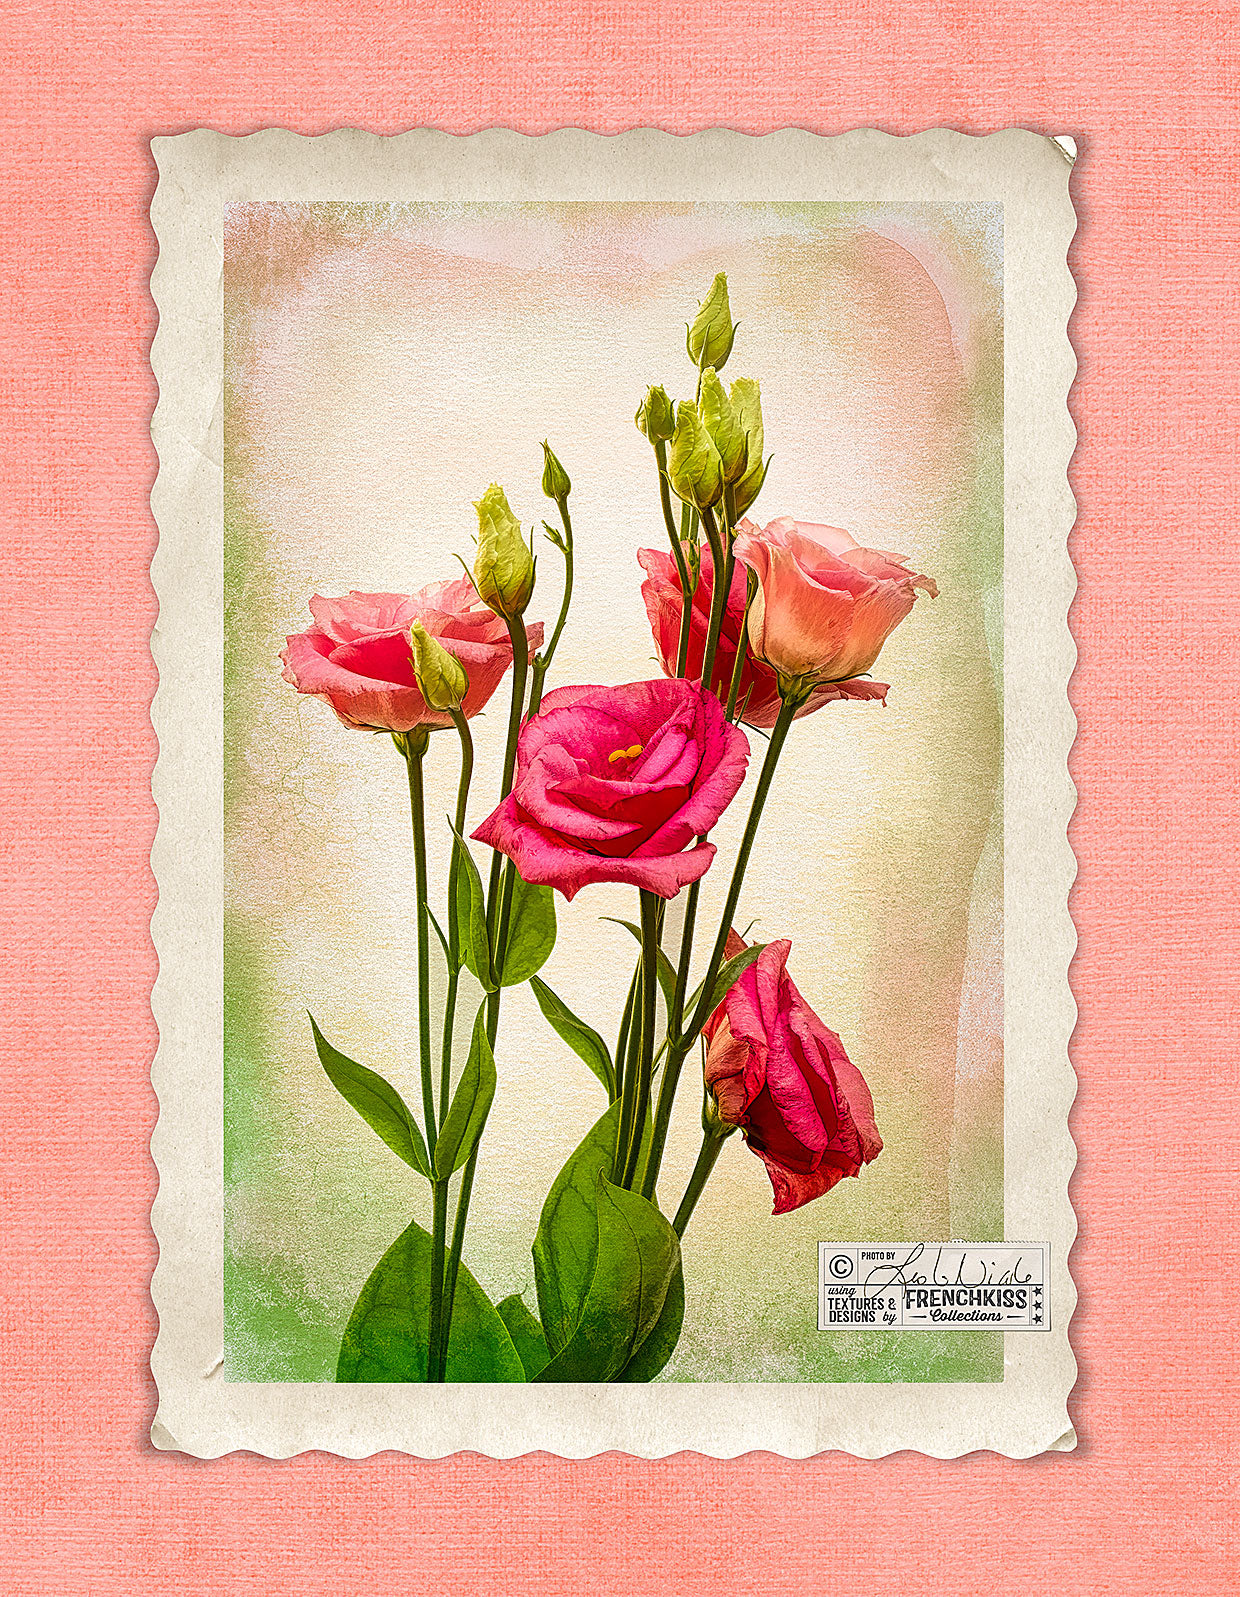 Lisianthus textured flower photograph with a digital vintage frame and texture background.